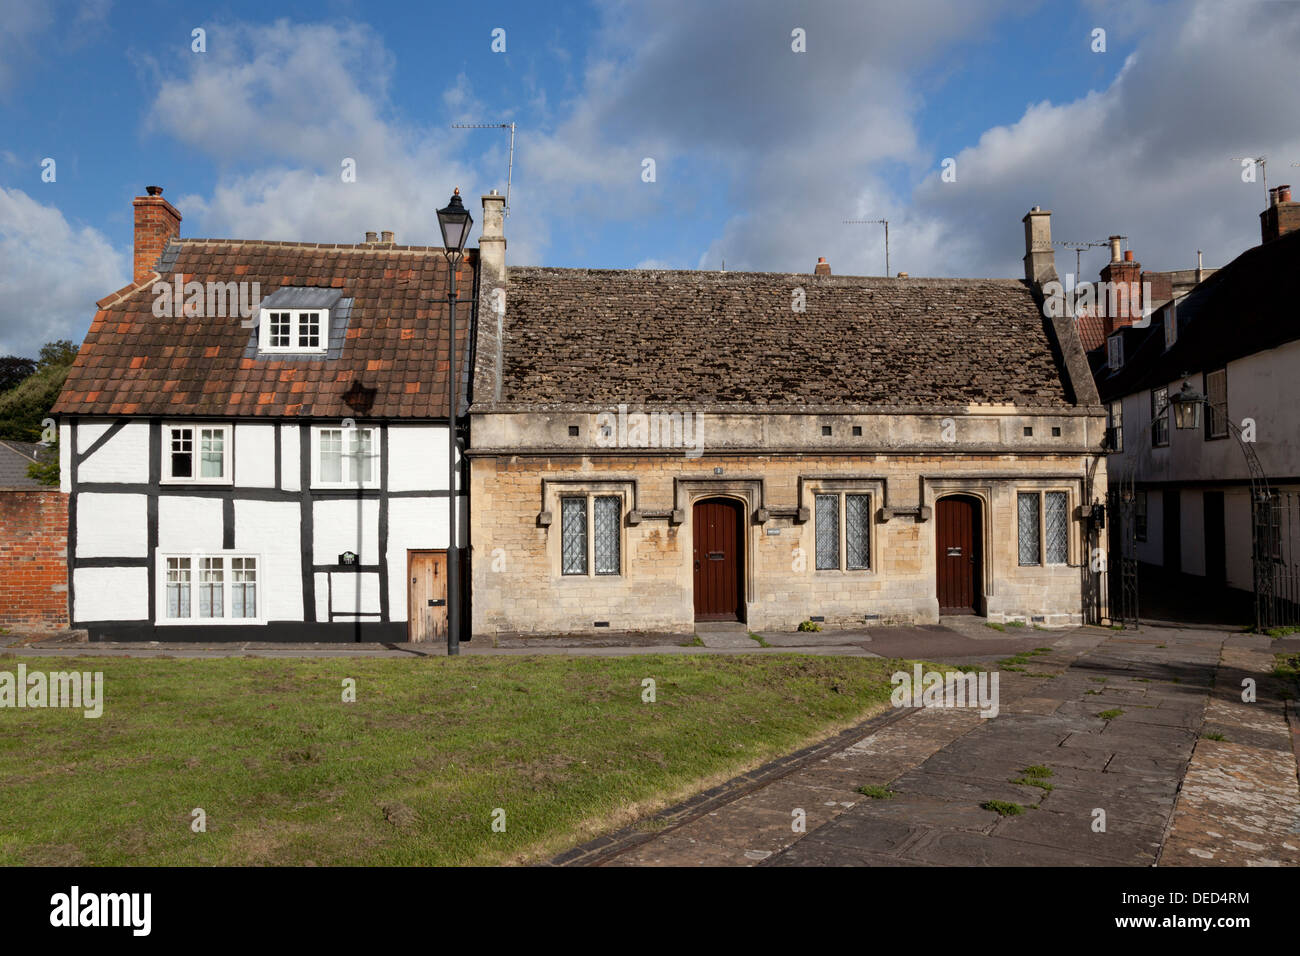 Cottages near the Church of St John the Baptist, Devizes, Wiltshire, England - Stock Image